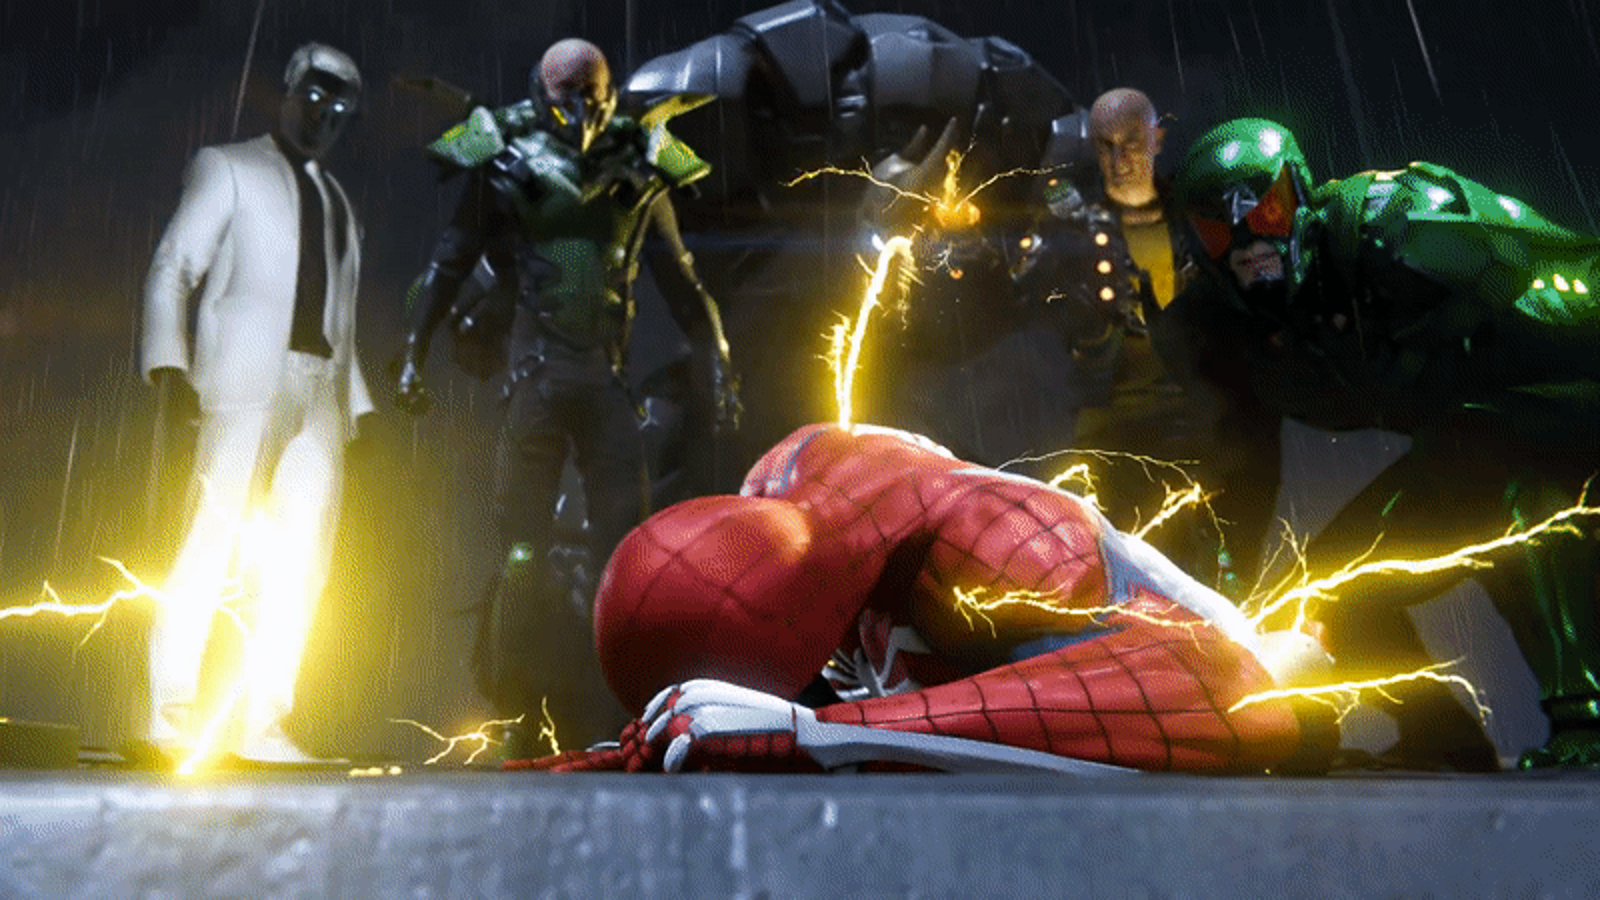 A Quick Guide to the Sinister Six, the Villainous Team-Up Menacing Spider-Man's New Video Game